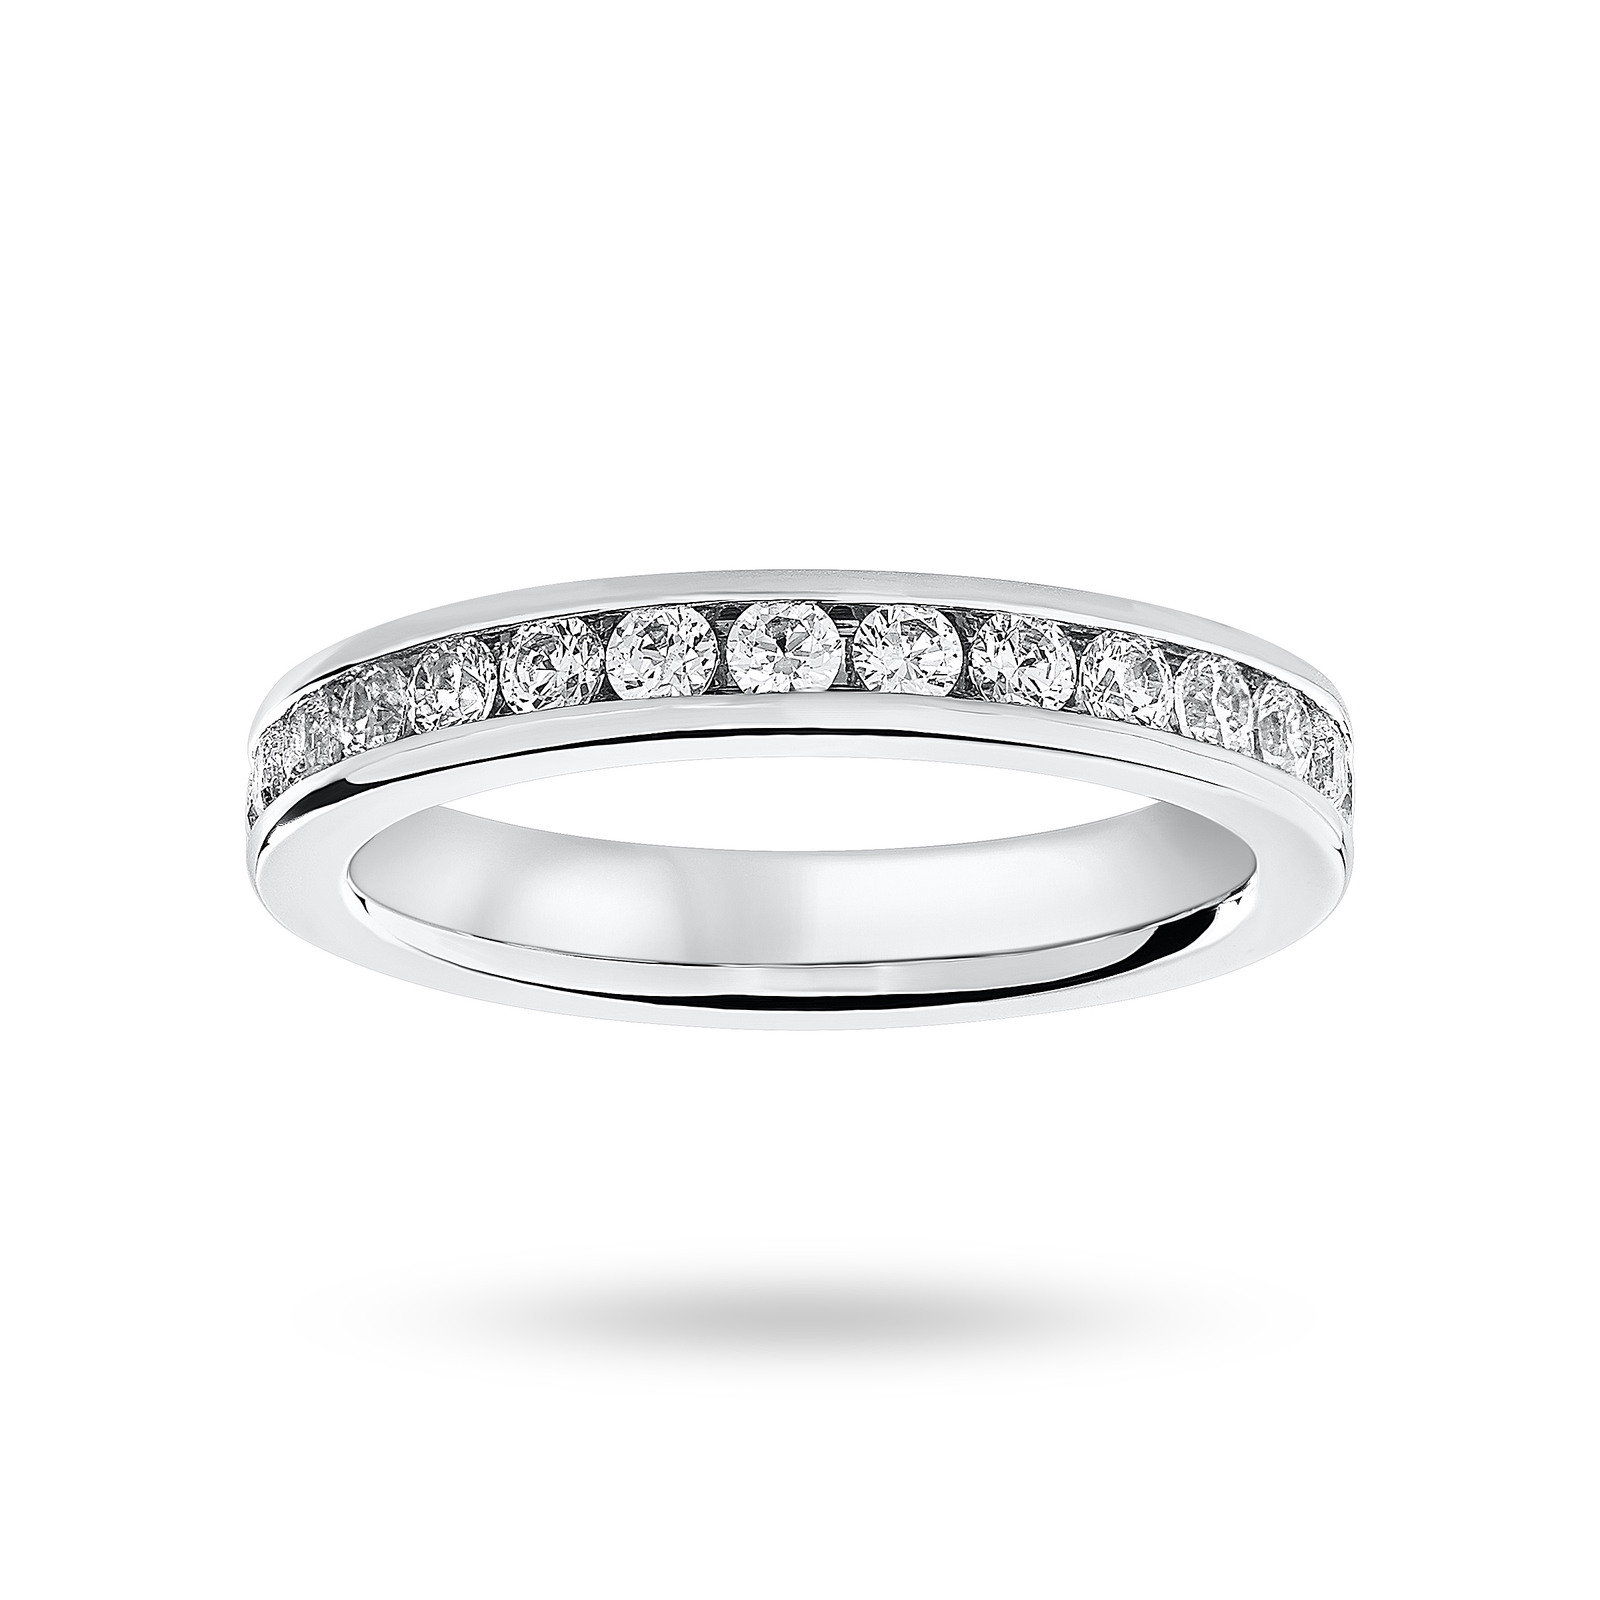 Platinum 1.00 Carat Brilliant Cut Channel Set Full Eternity Ring